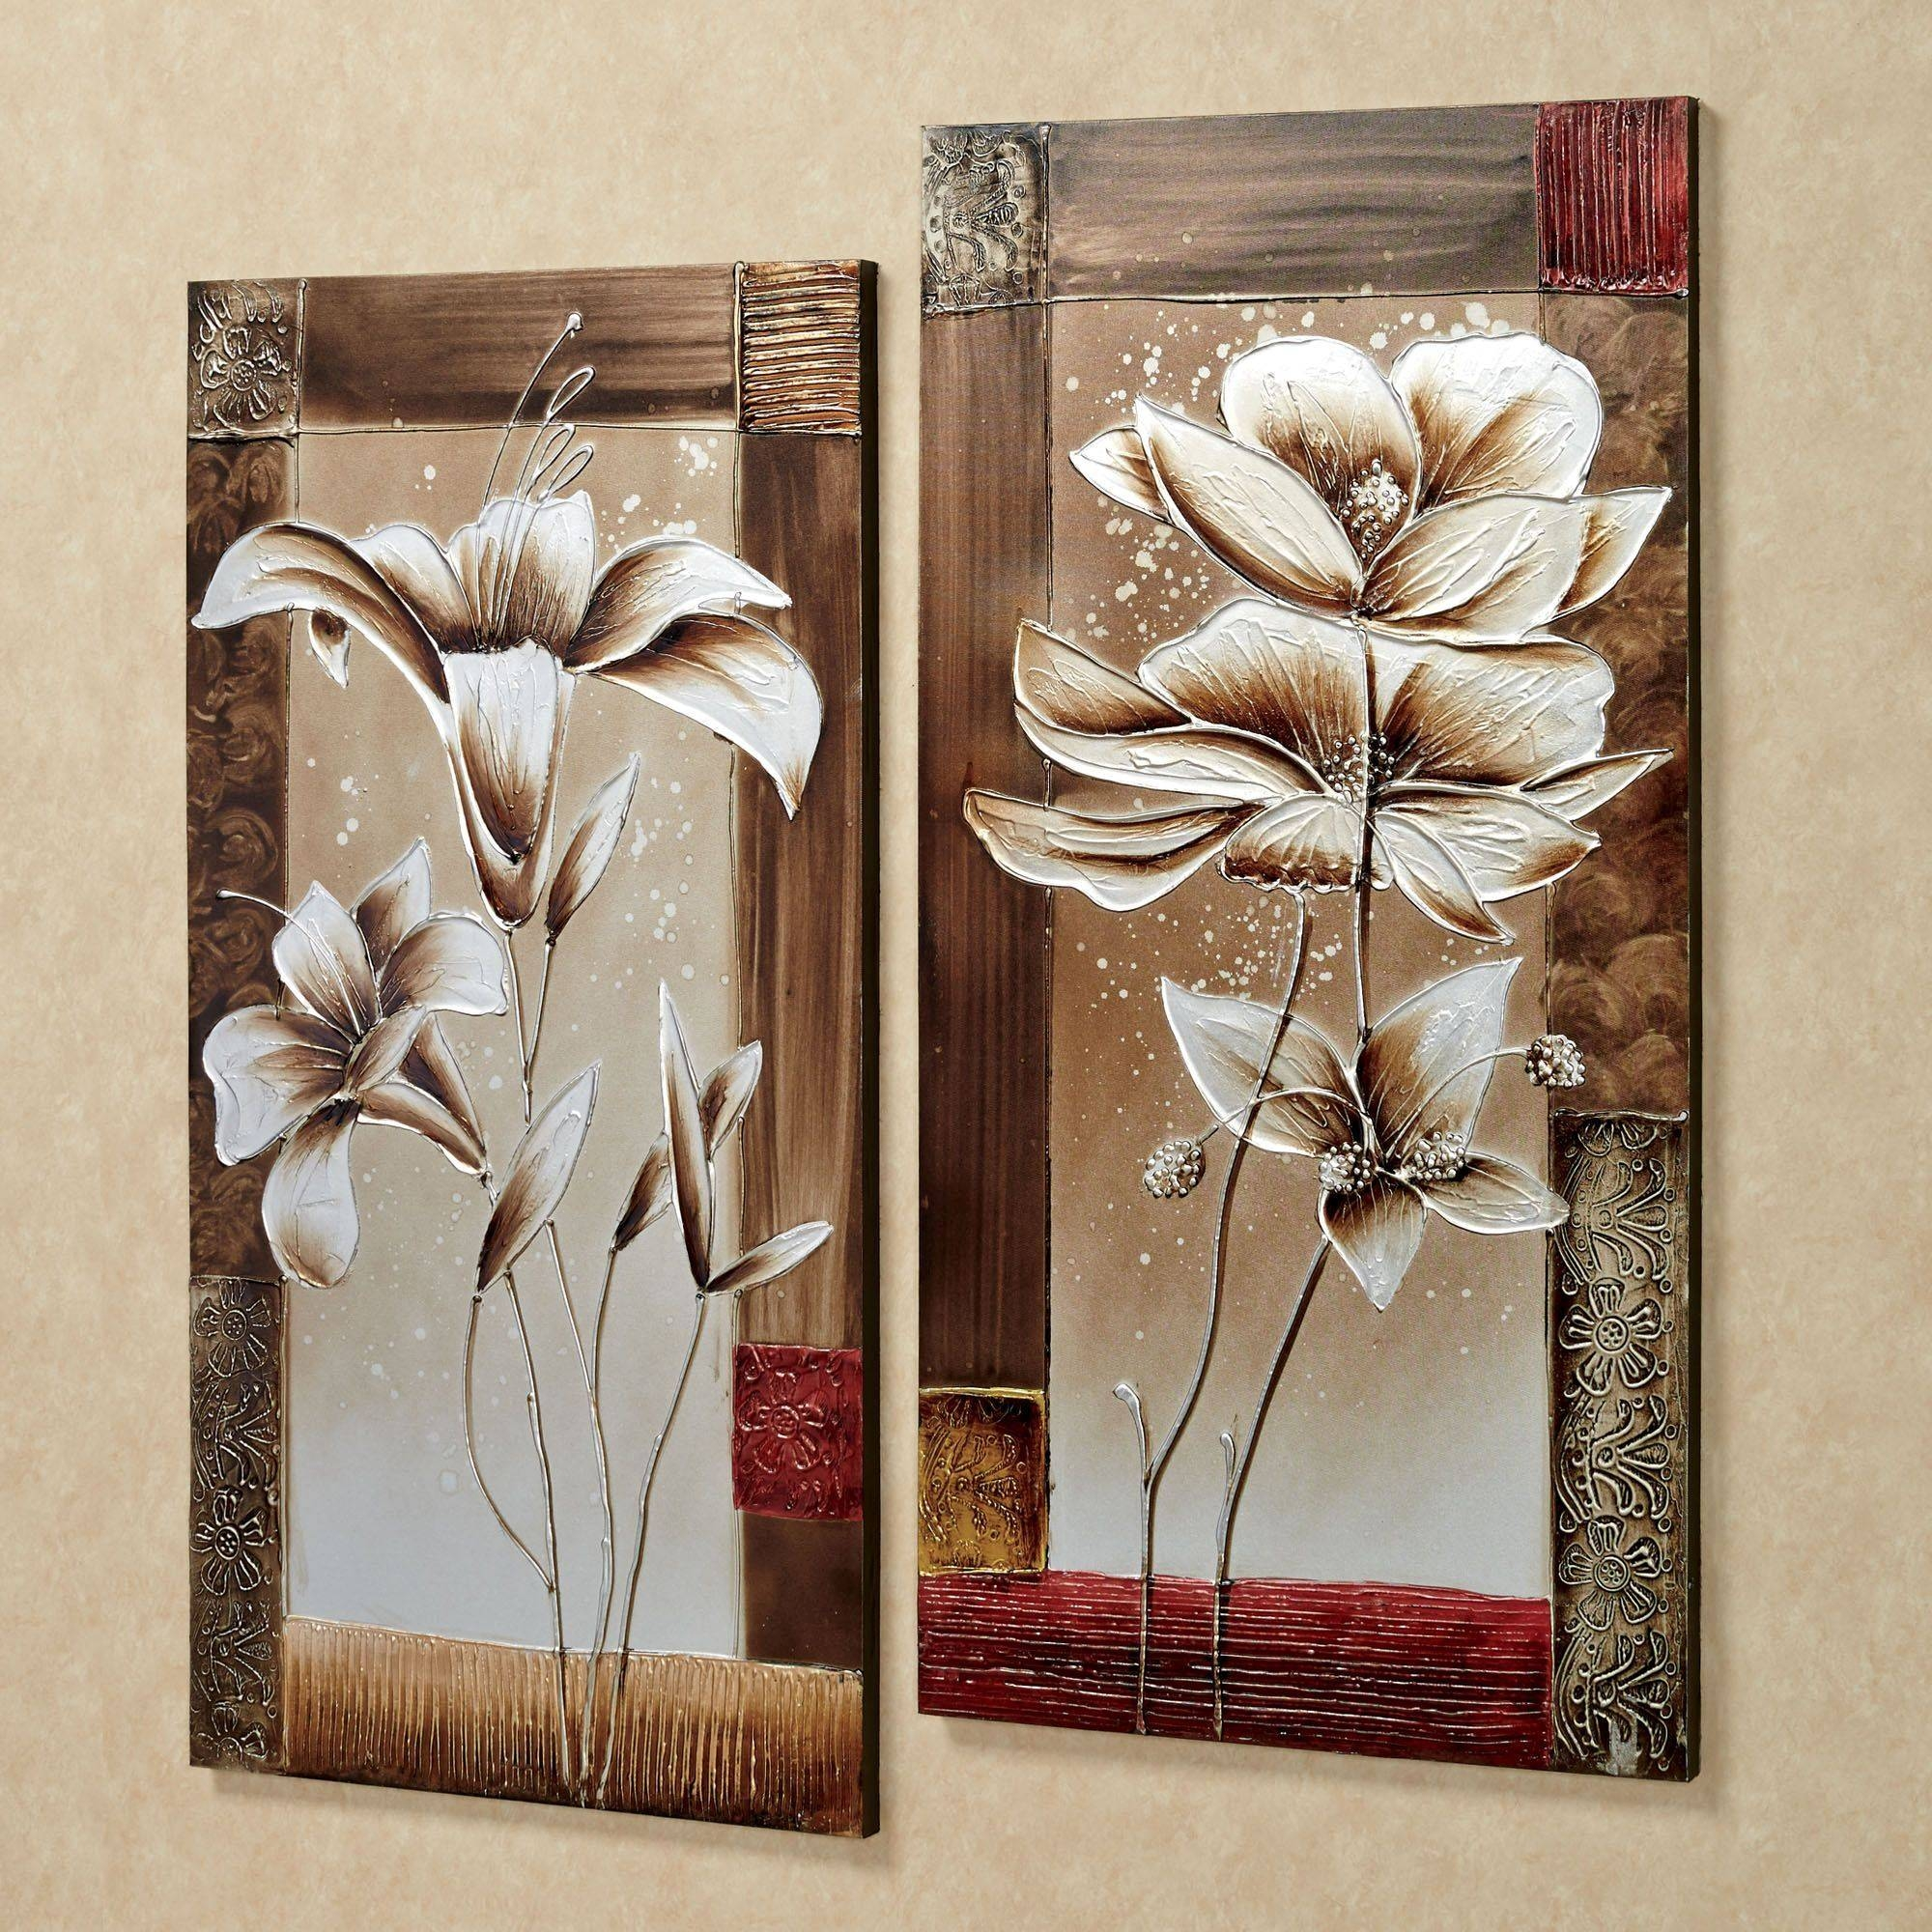 Decor: Petals Of Spring Floral Canvas Wall Art Set Intended For Best And Newest Canvas Wall Art 3 Piece Sets (View 9 of 20)